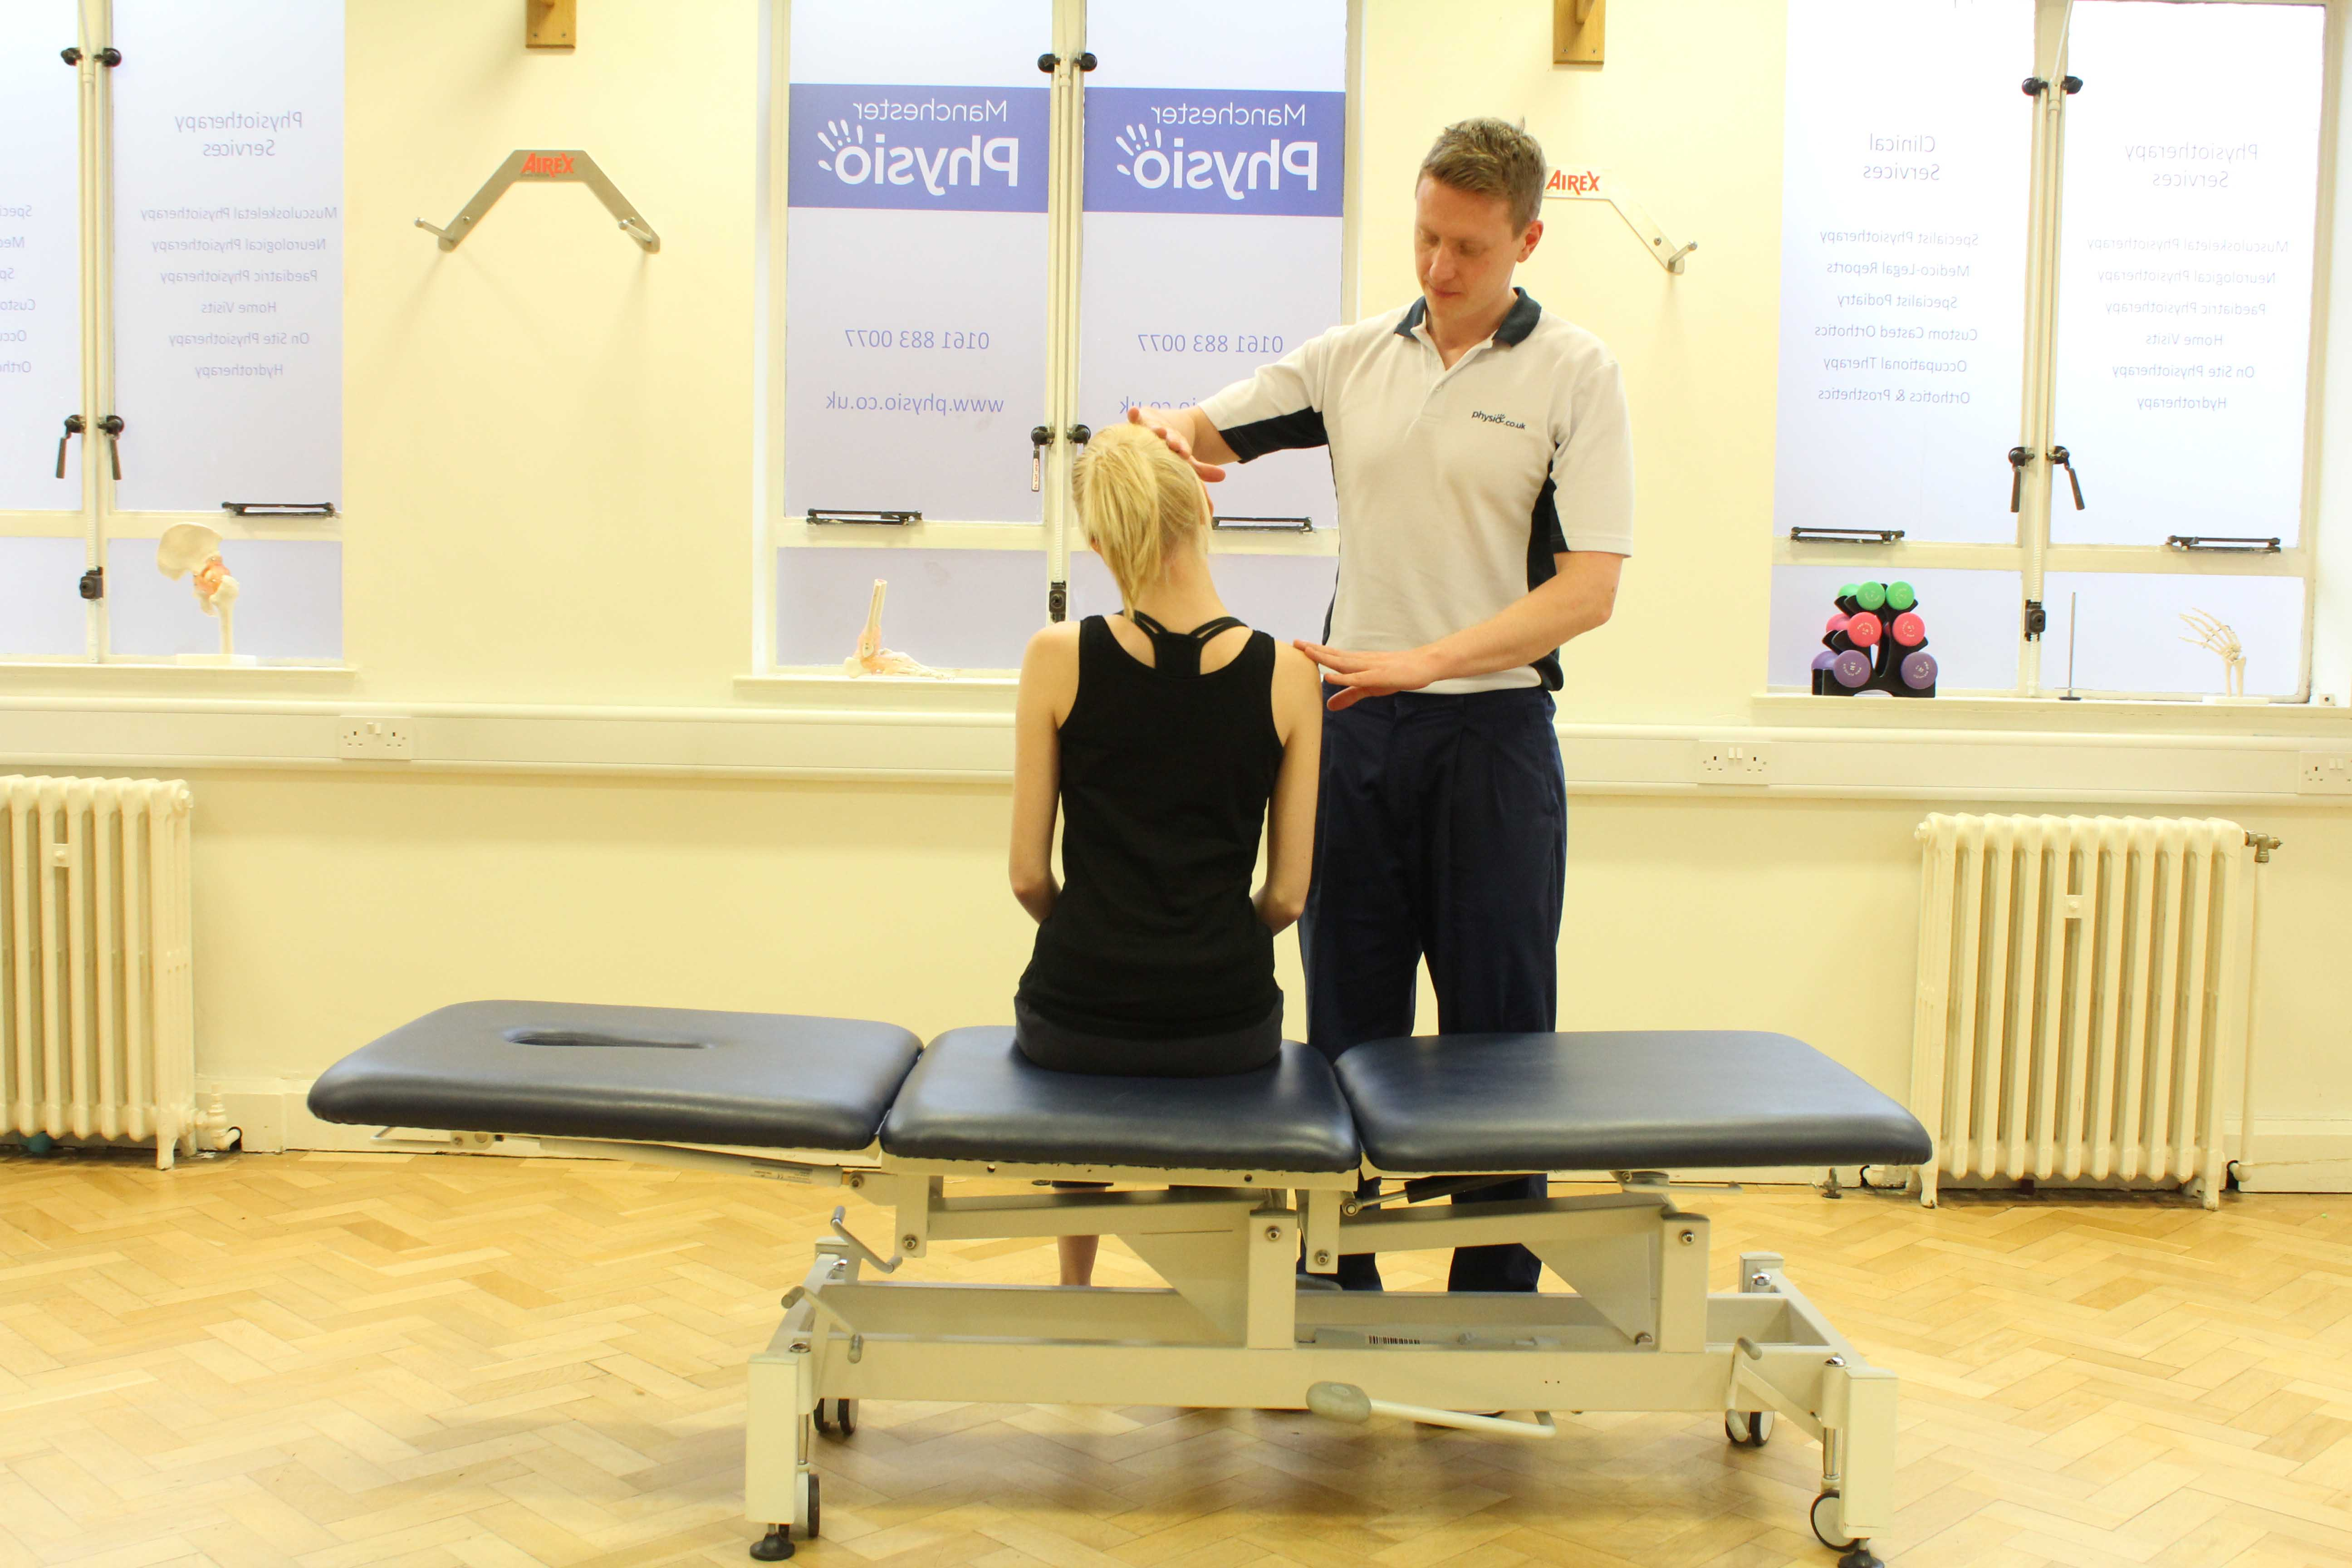 Experienced Physiotherapist conducting an assessment of the cervical spine, muscles and connective tissues in the neck